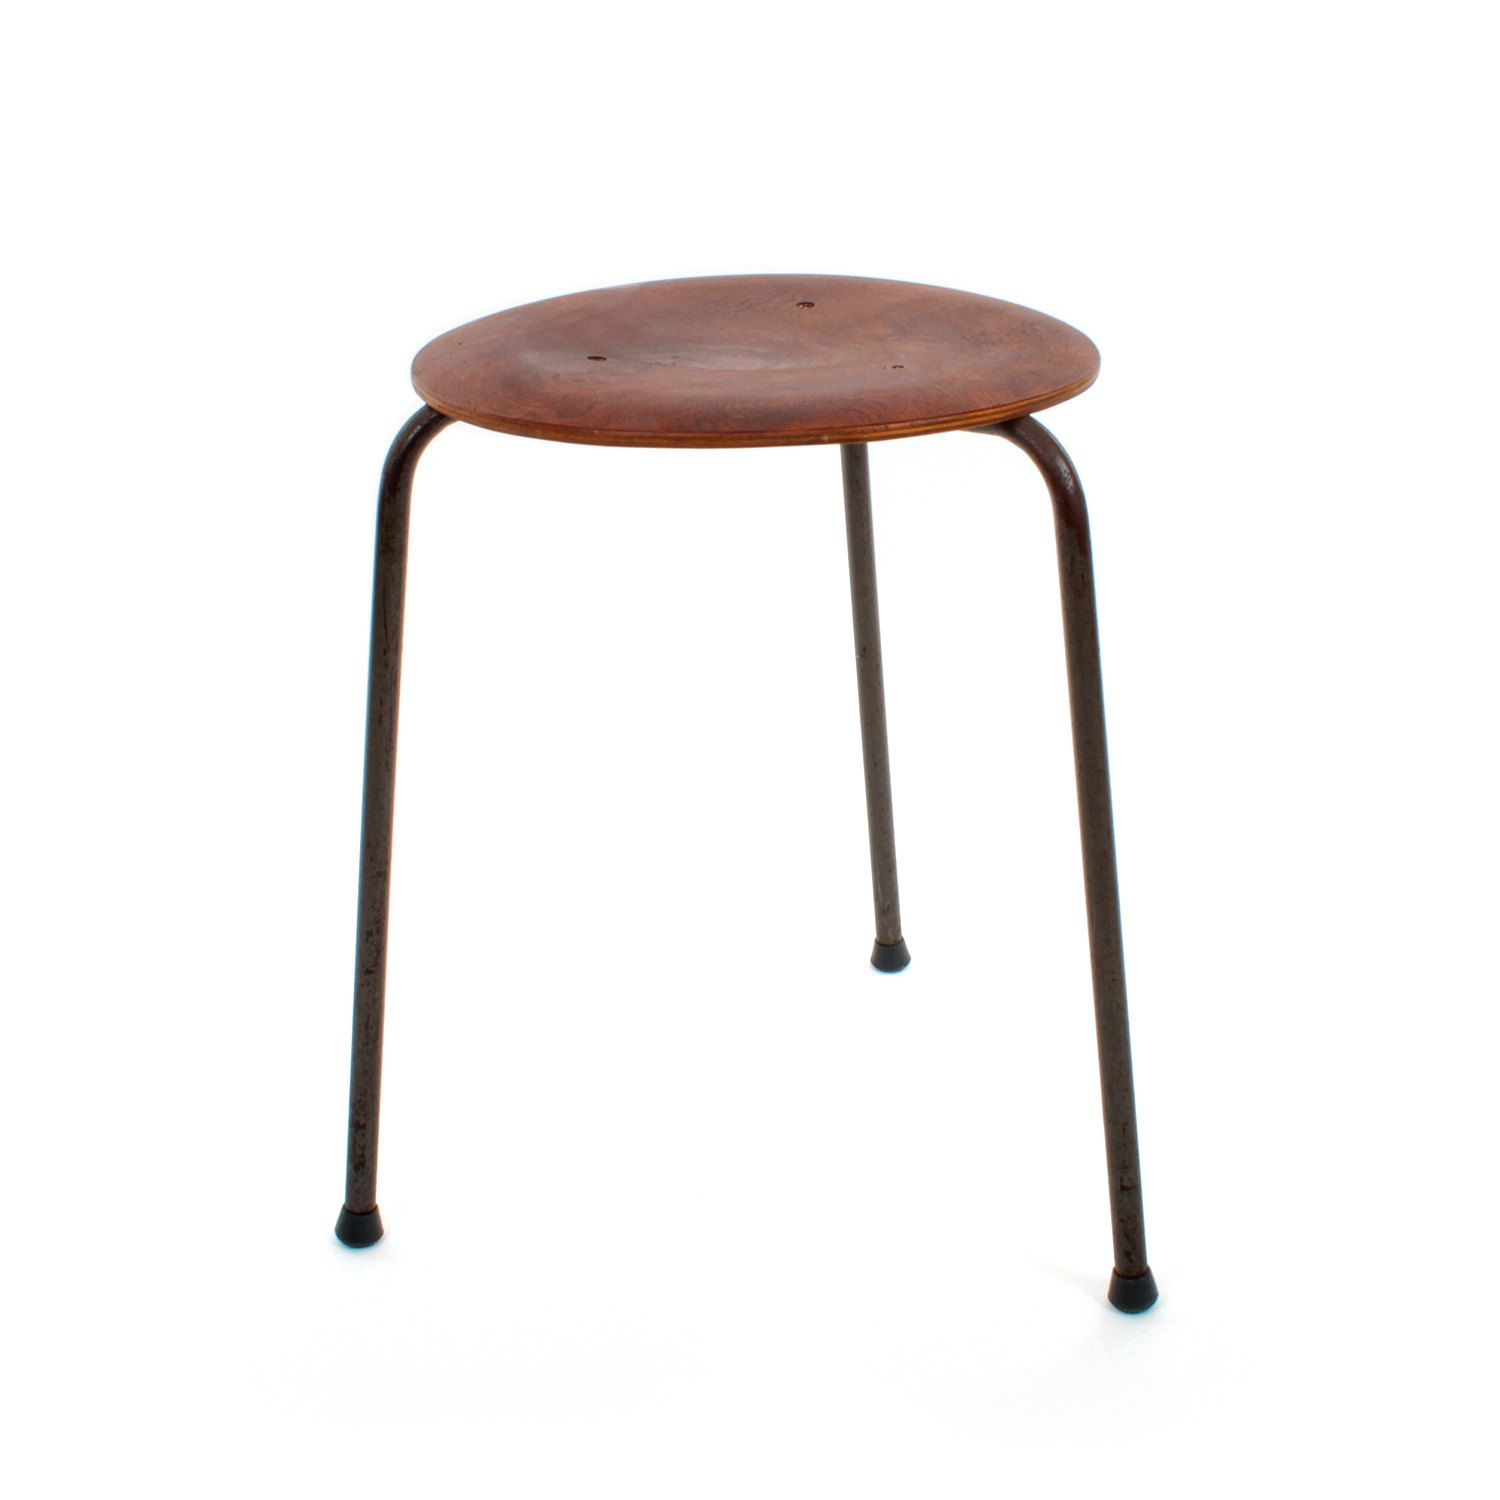 Dot rosewood stool by arne jacobsen fritz hansen 1952 iconic mid century danish design set of two classic brown chairs by danishvintagedesigns on